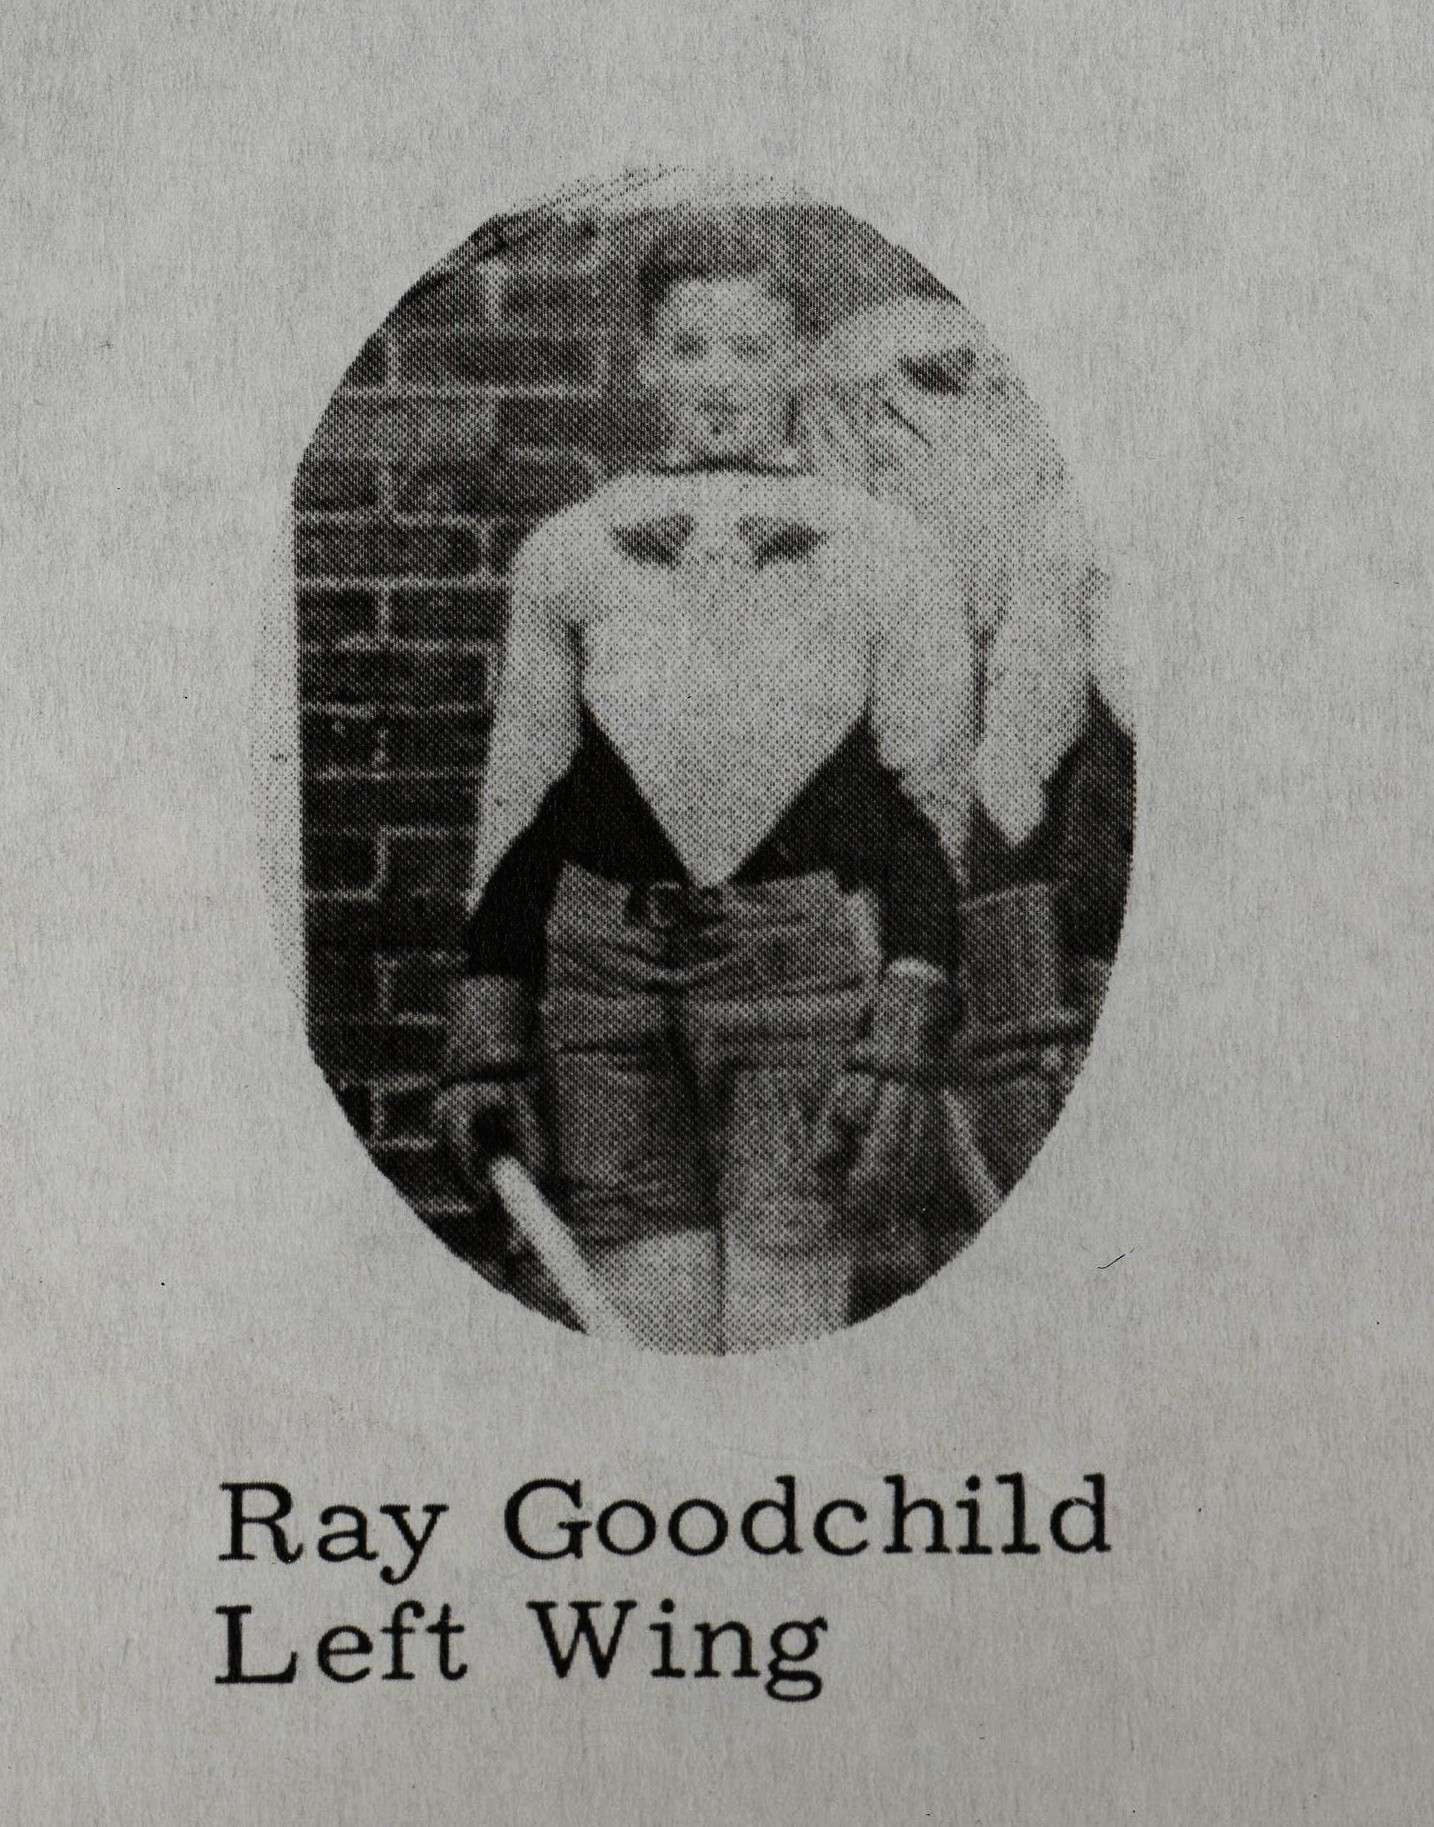 Ray Goodchild - Left Wing.jpg